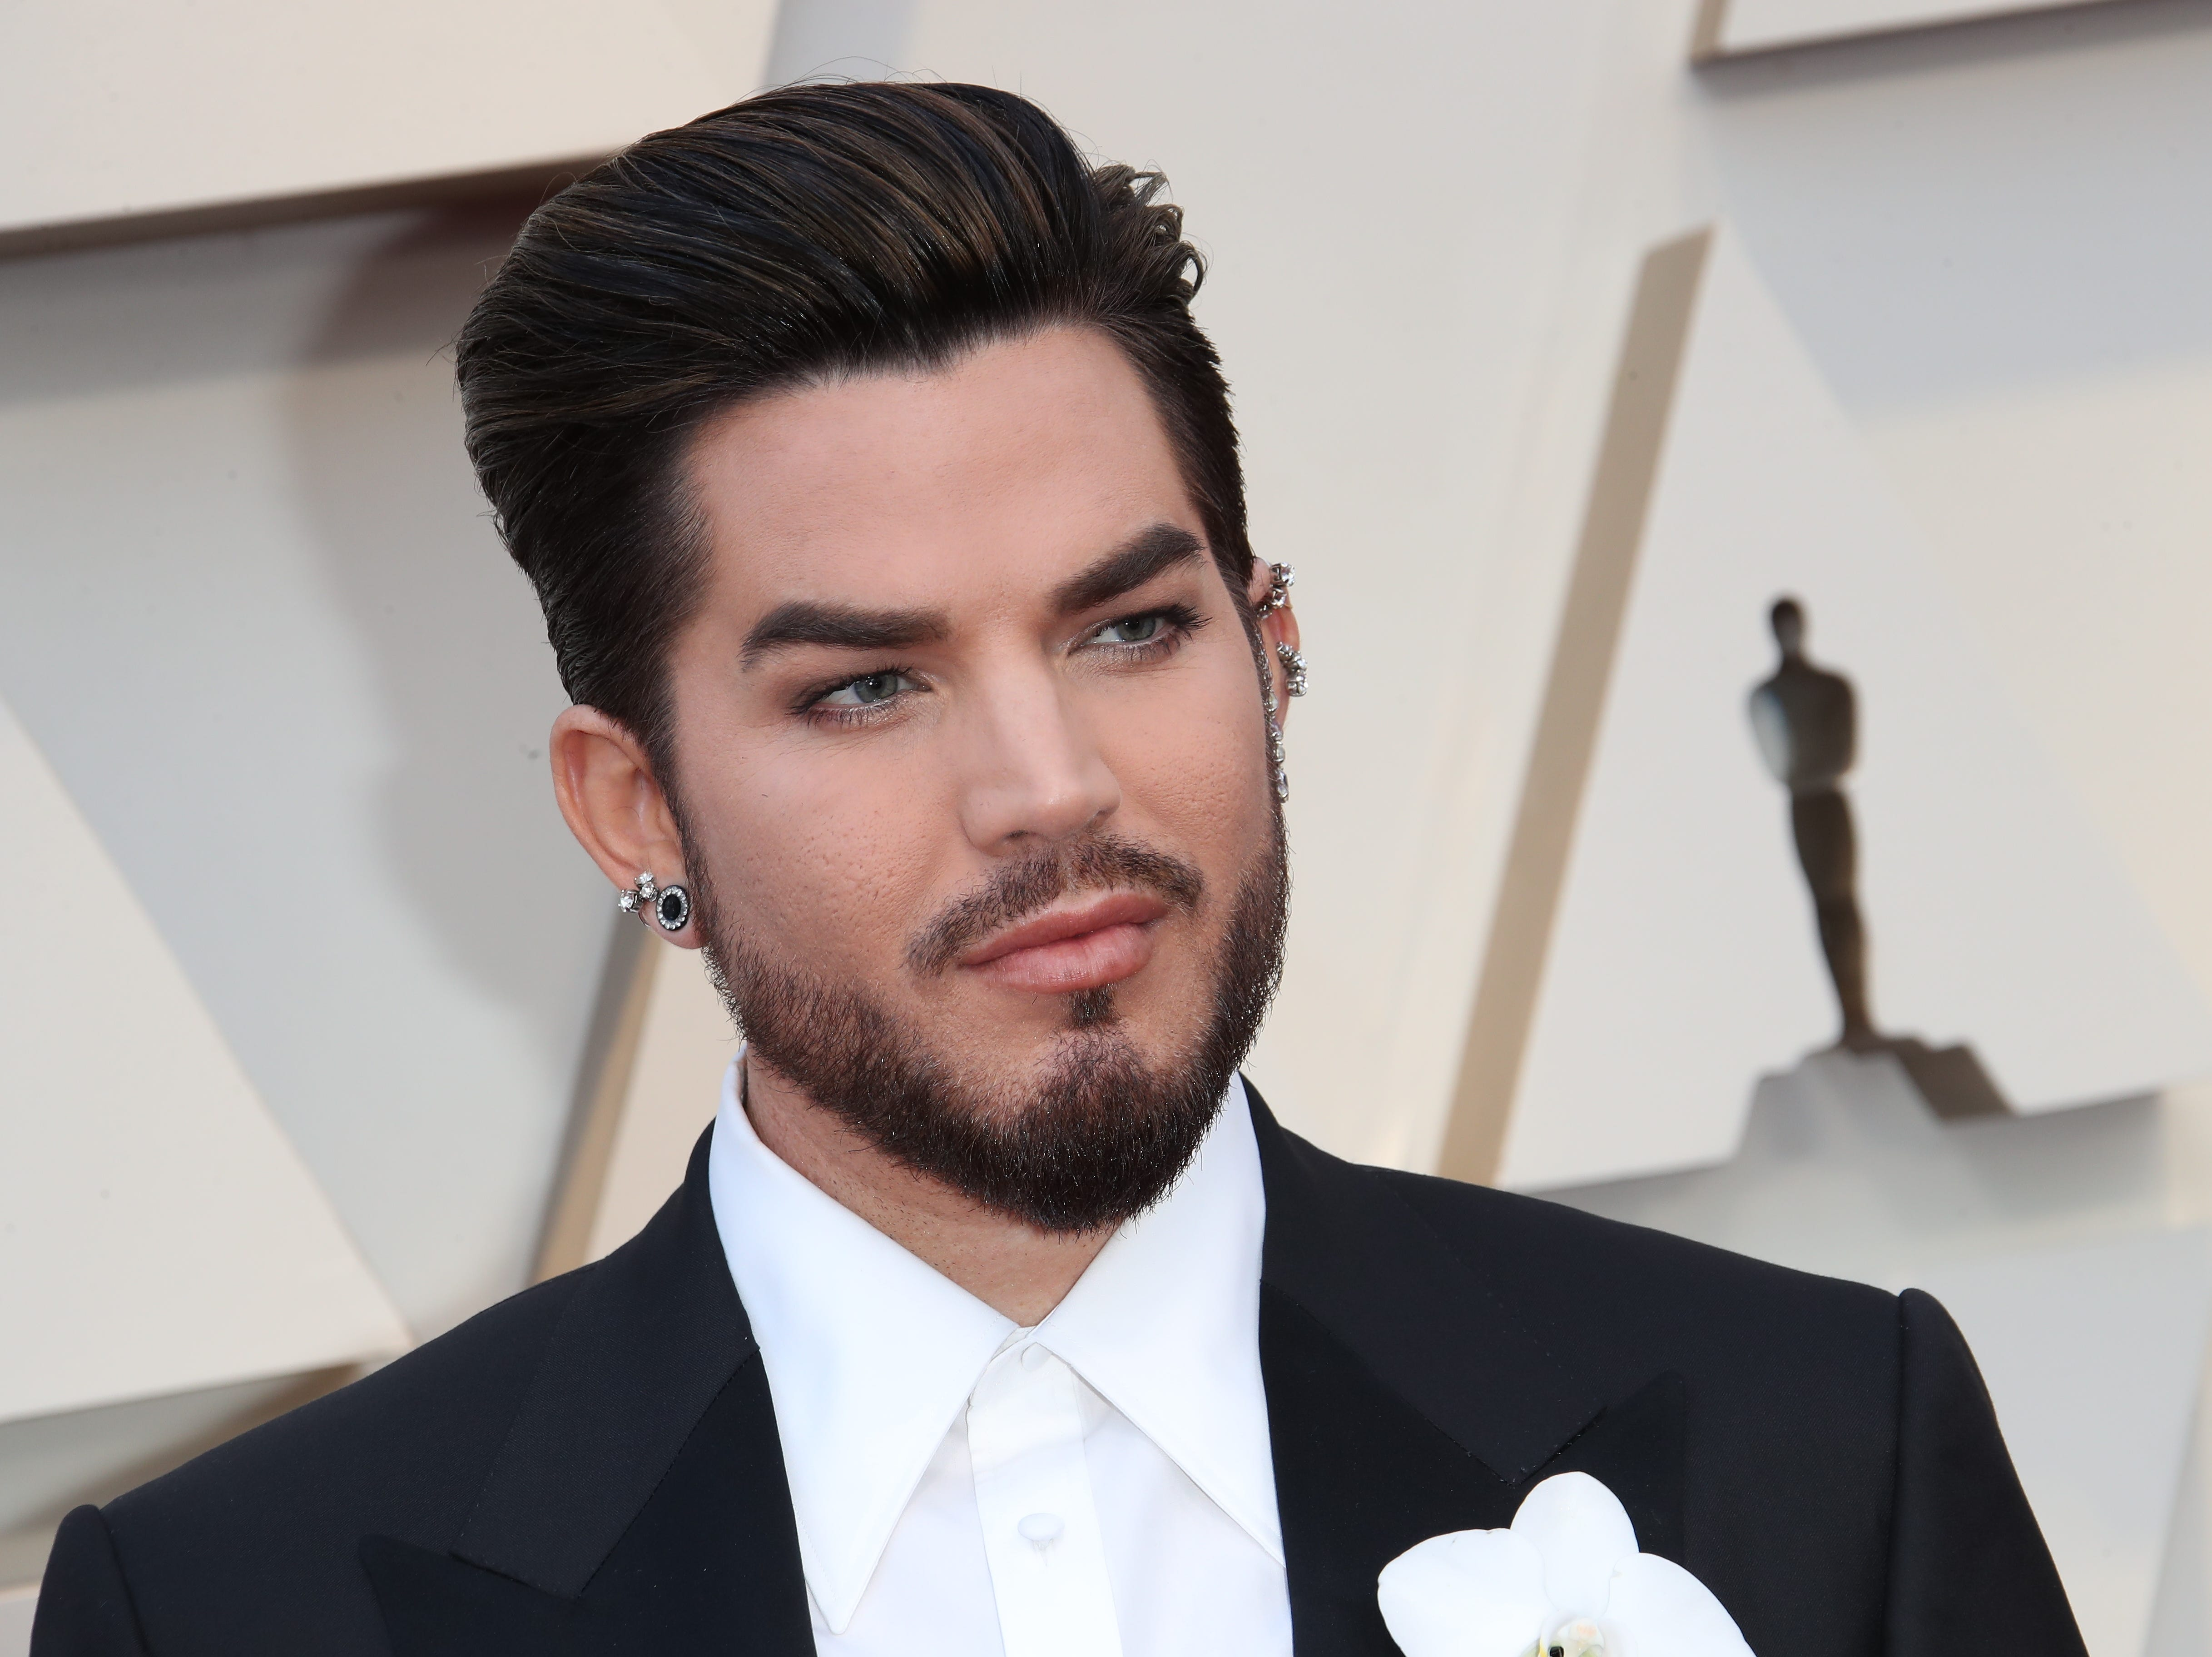 February 24, 2019; Los Angeles, CA, USA; Adam Lambert arrives at the 91st Academy Awards at the Dolby Theatre. Mandatory Credit: Dan MacMedan-USA TODAY NETWORK (Via OlyDrop)